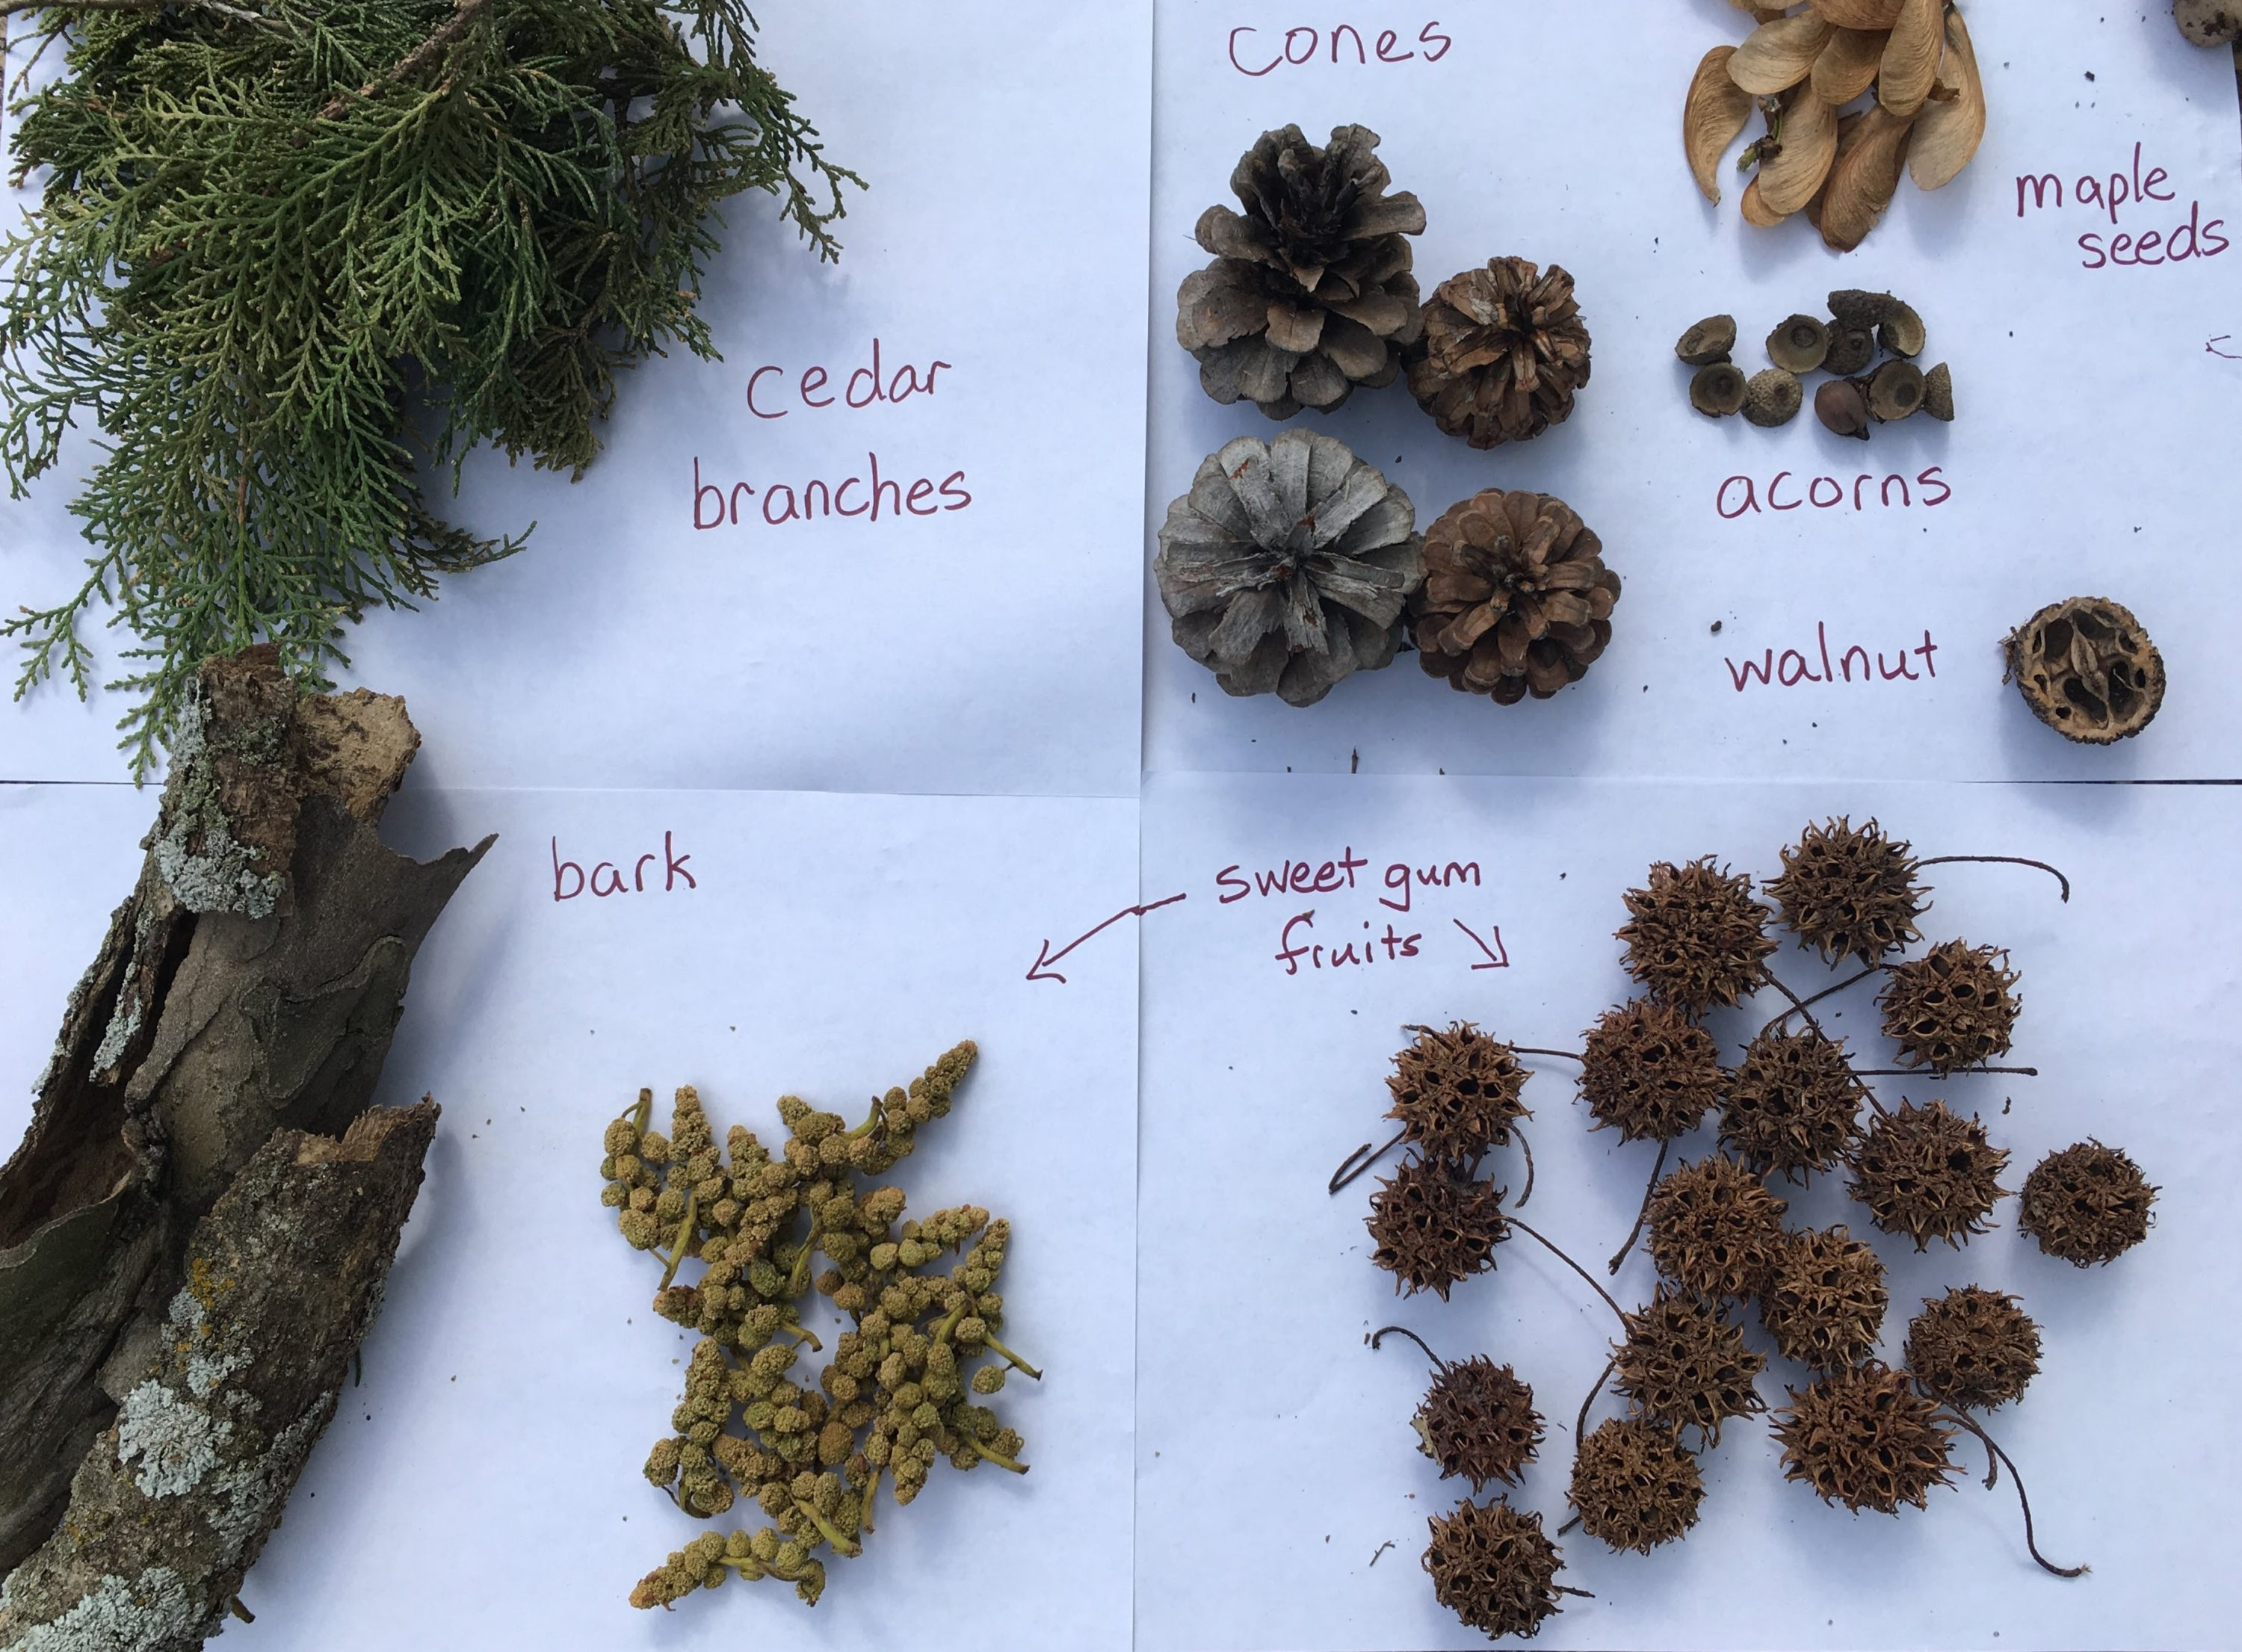 found tree materials: cedar branches, cones, maple seeds, acorns, walnut, bark, sweet gum fruit